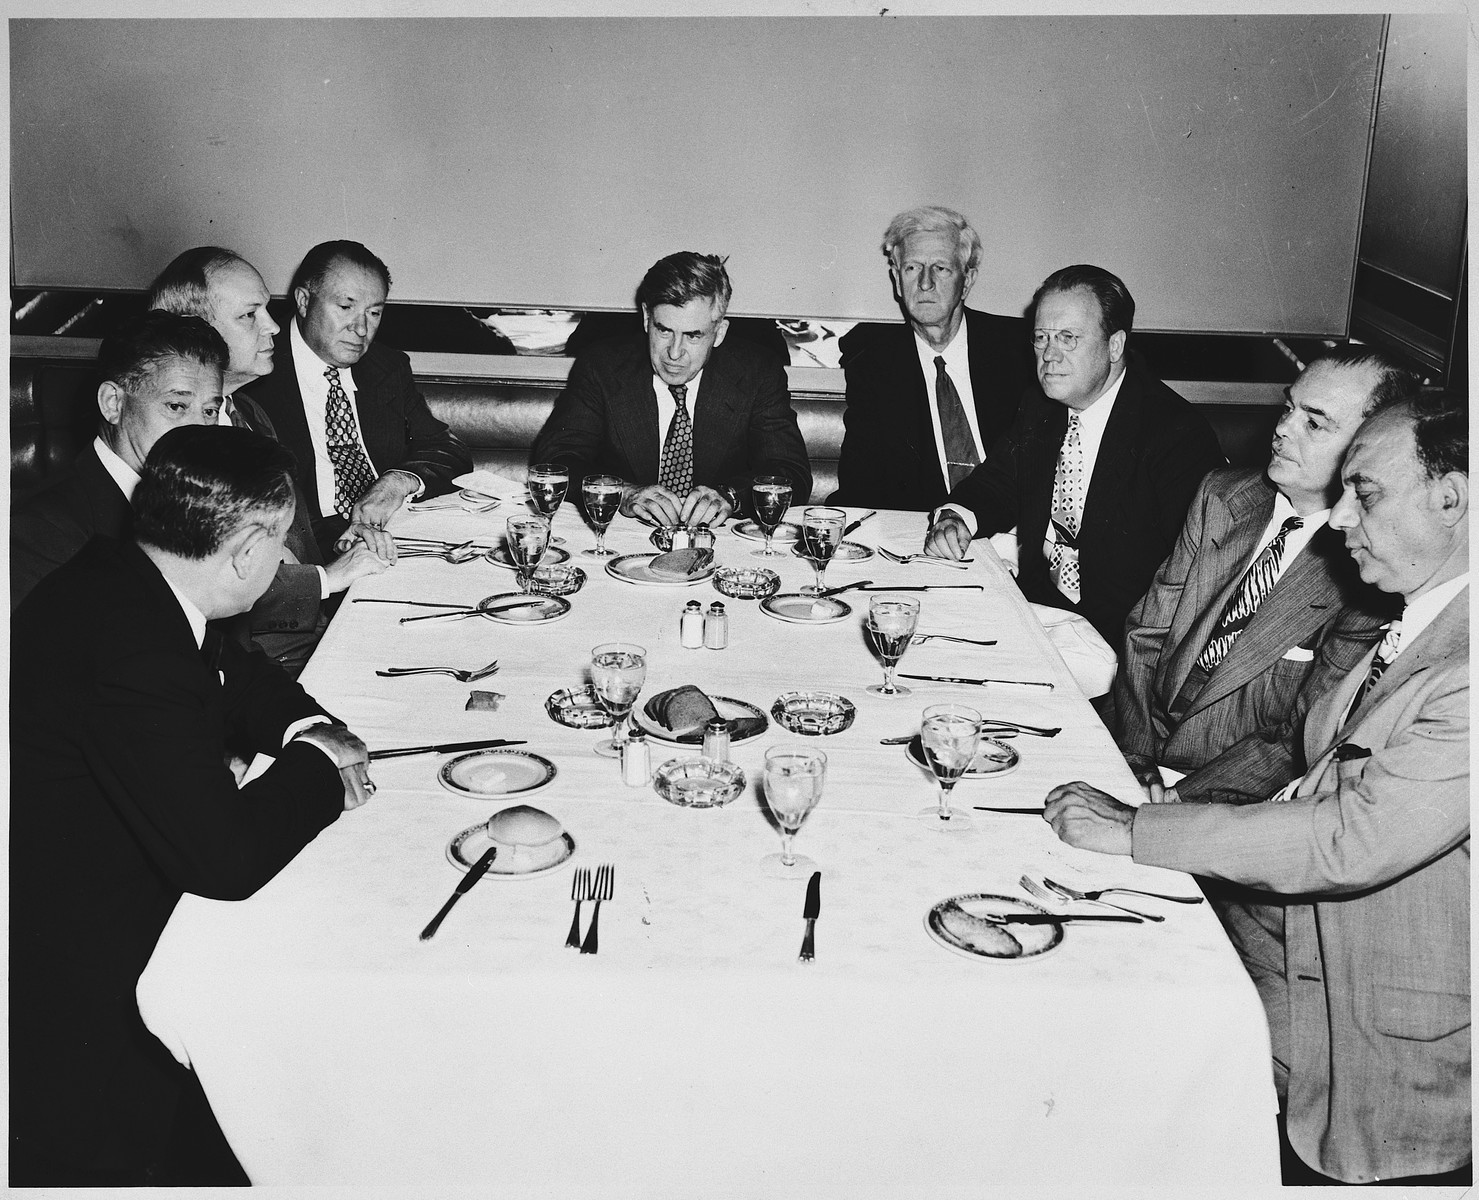 James G. McDonald attends an unidentified dinner meeting in New York City.